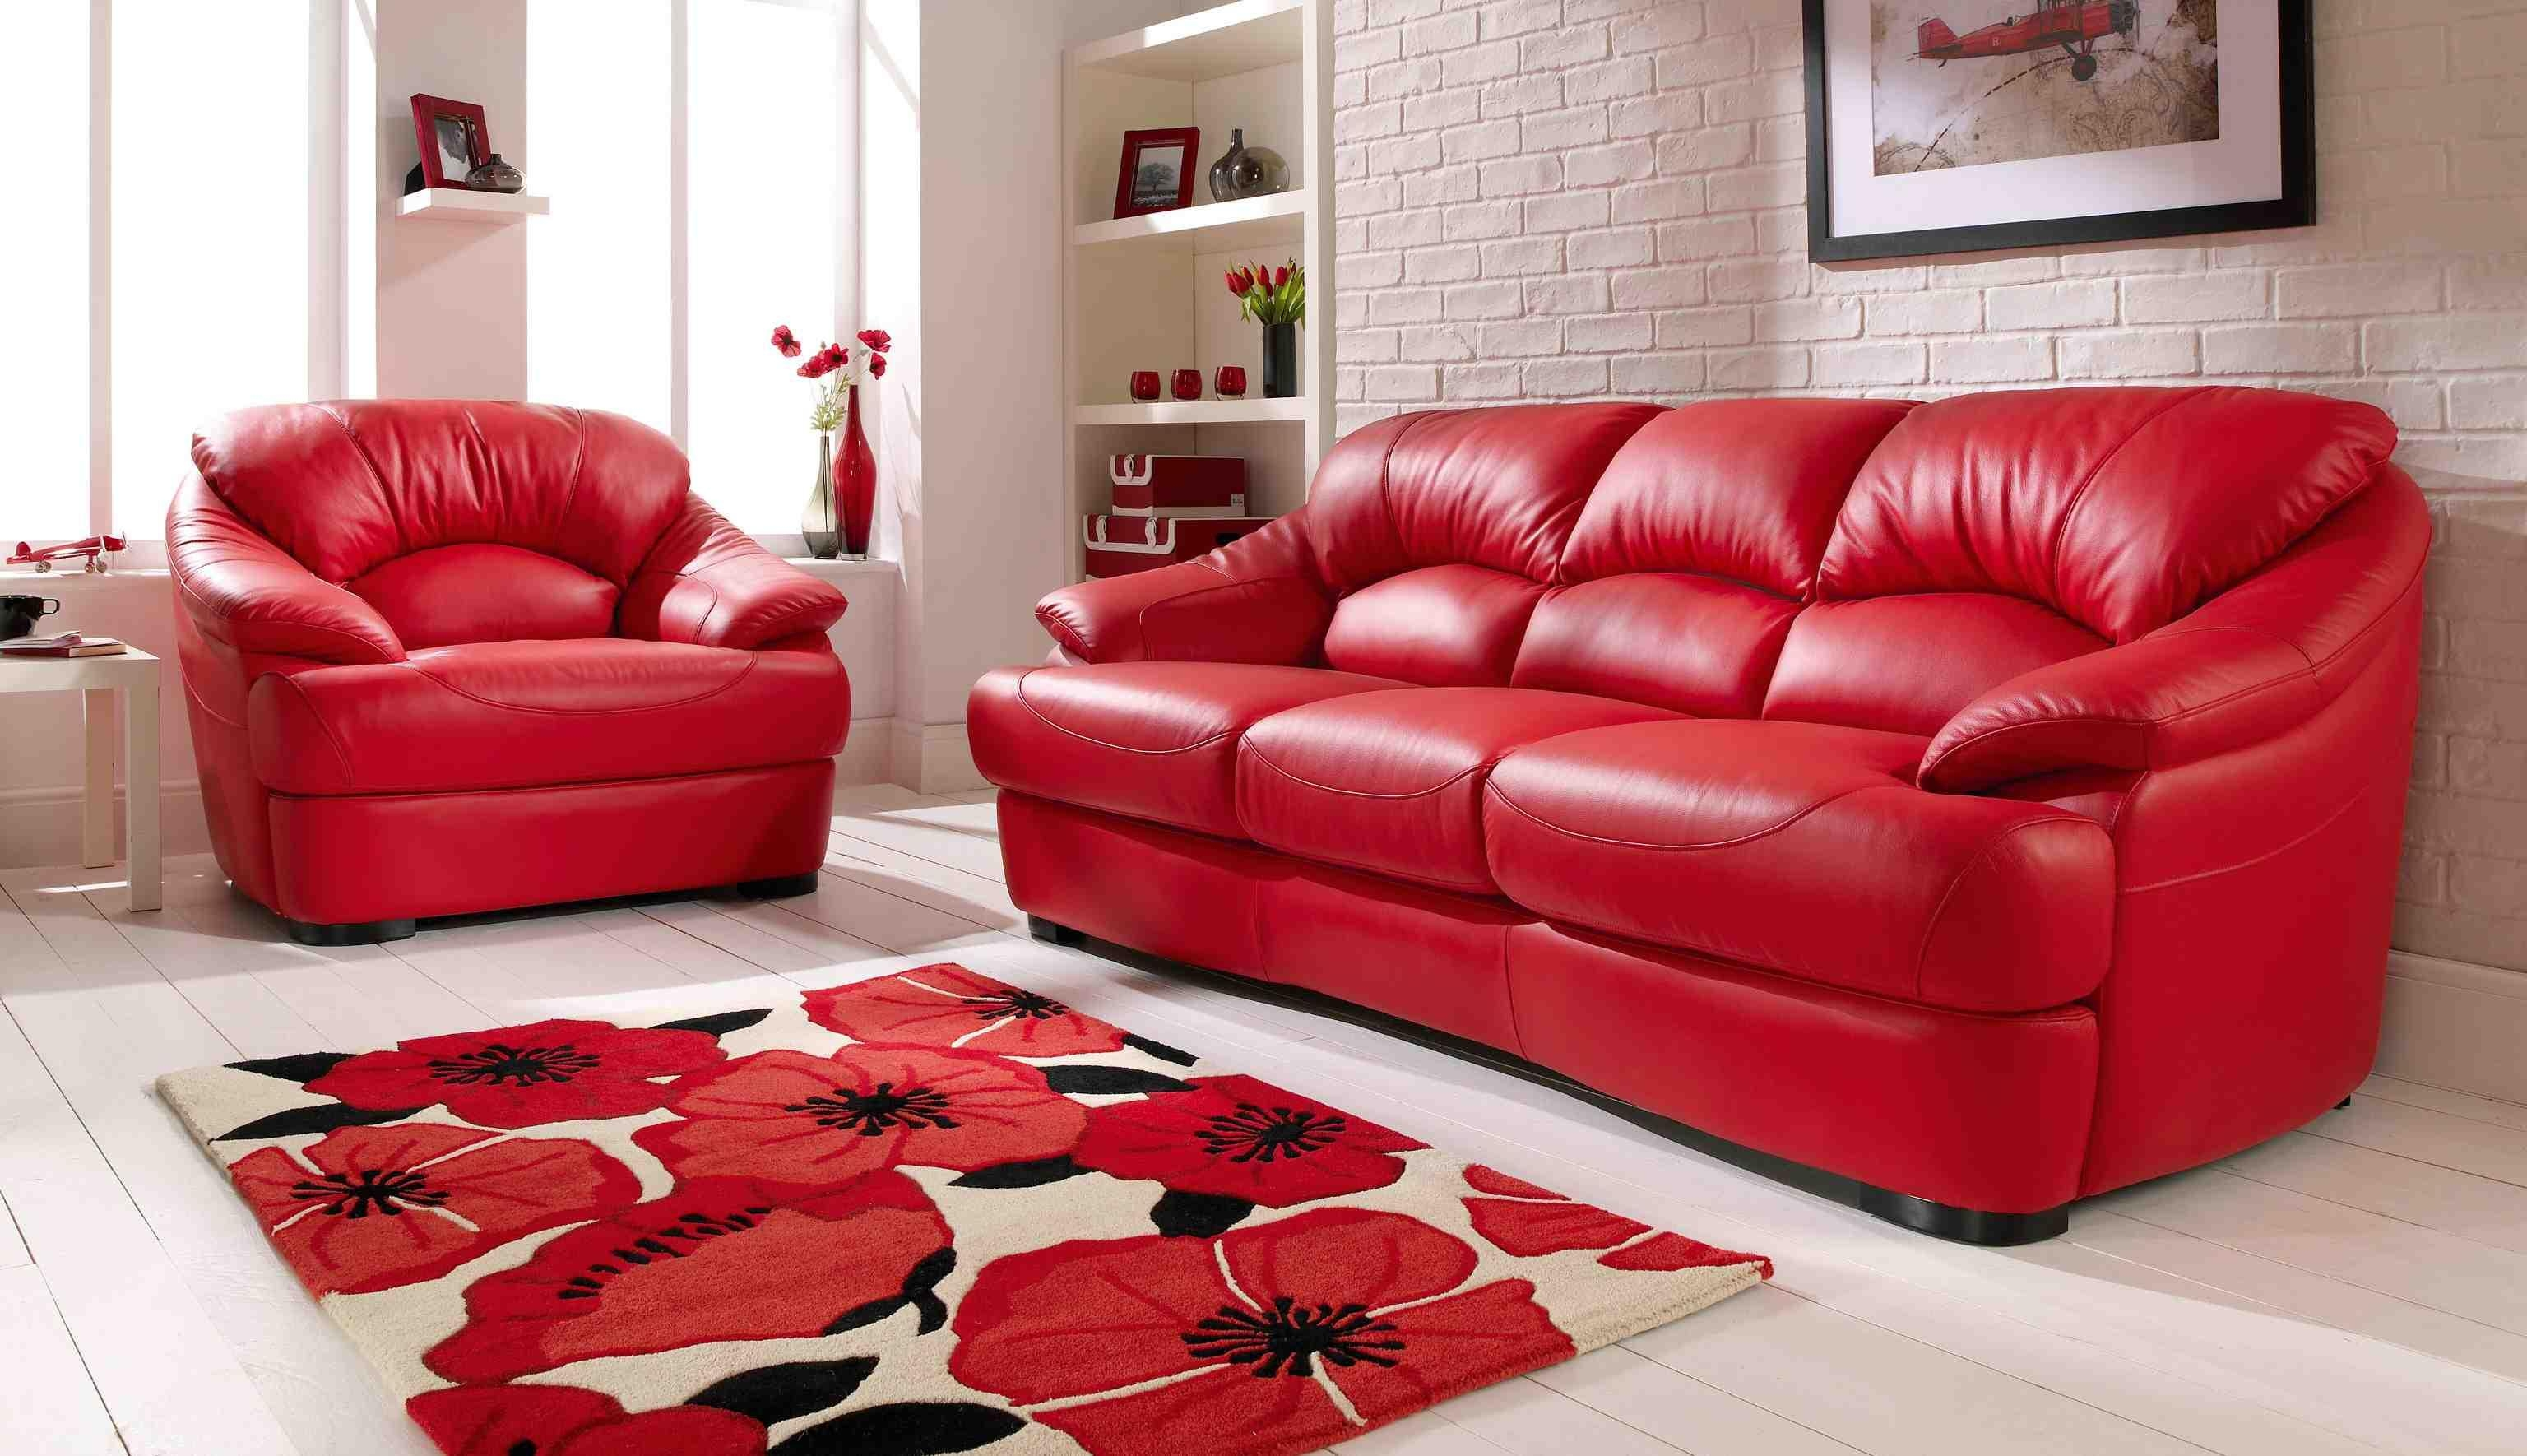 Leather Couch Decorating Ideas Living Room – Destroybmx With Dark Red Leather Sofas (Image 11 of 20)